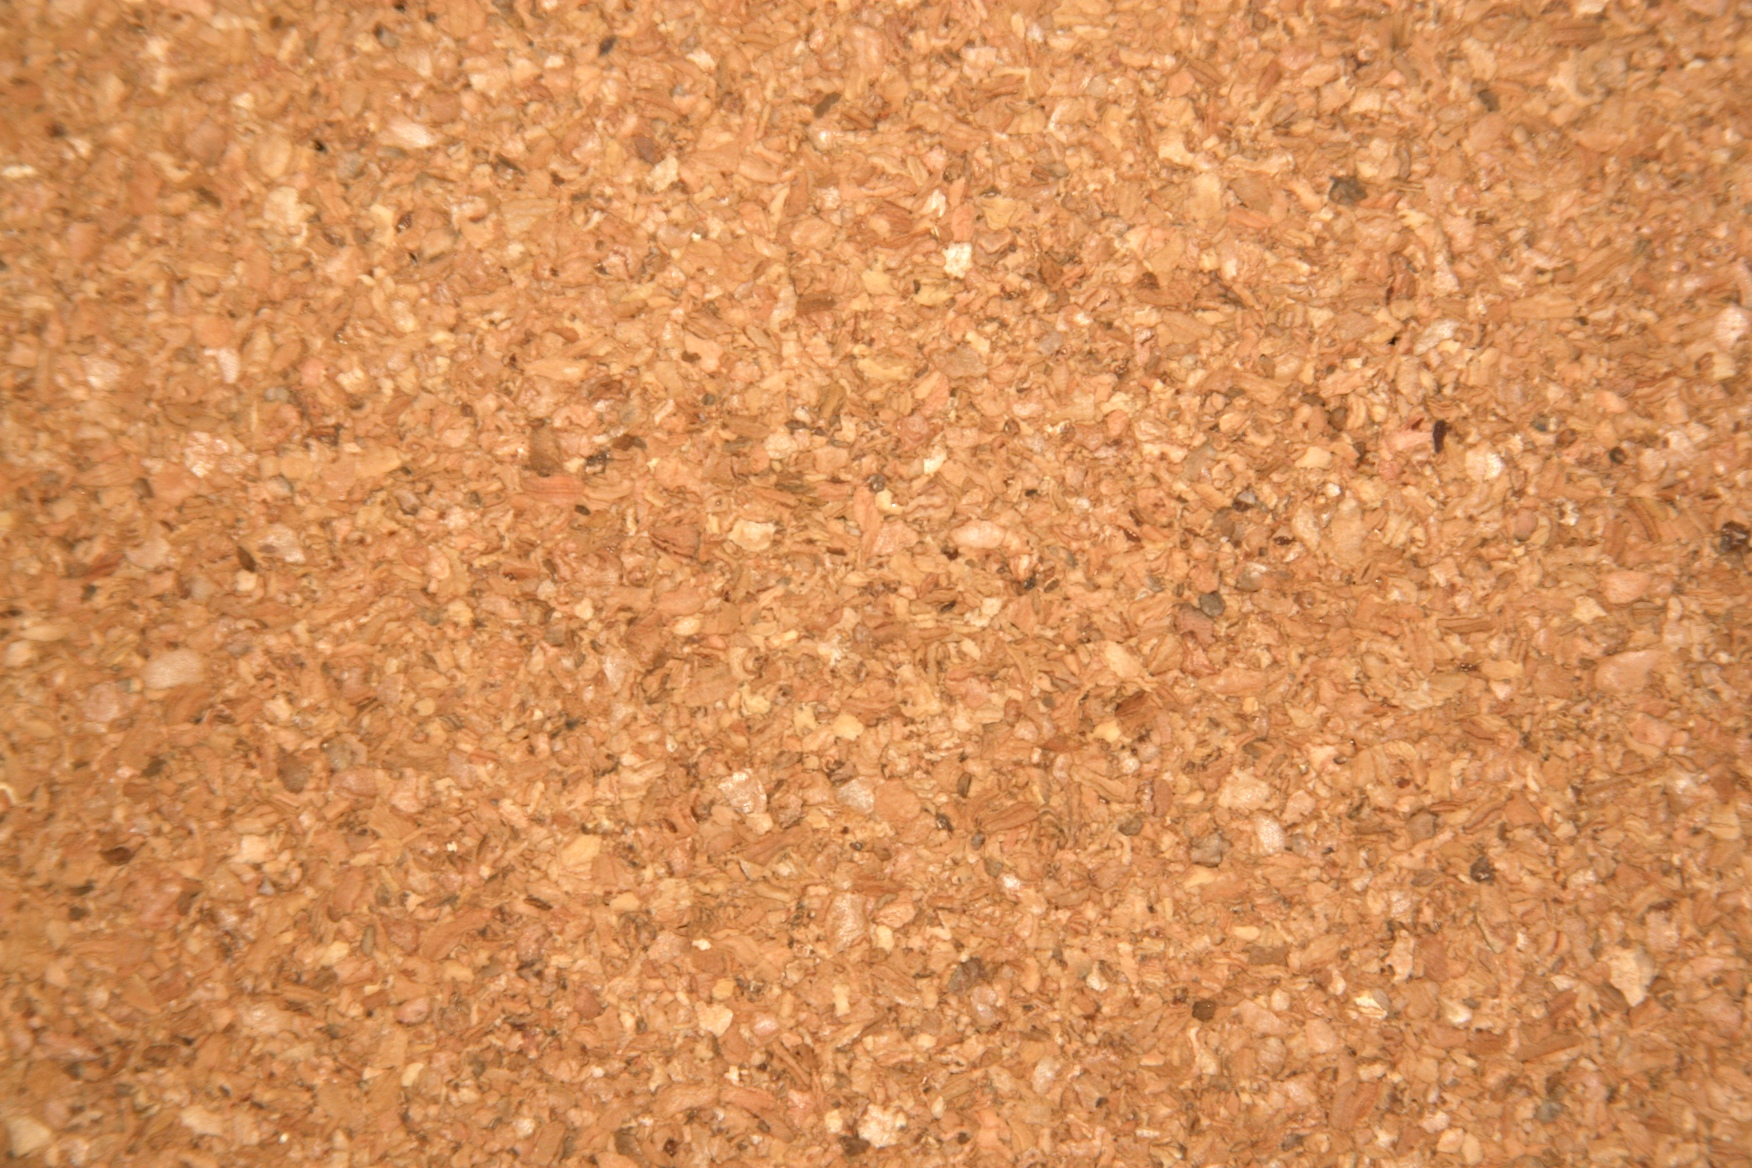 o-die-cut-cork-board-tiles-cork-board-tiles-for-wall-cork-board-tiles-for-floors-framed-cork-board-tiles-foray-cork-board-tiles-cork-tiles-for-pin-board-cork-tiles-for-notice-board-fab